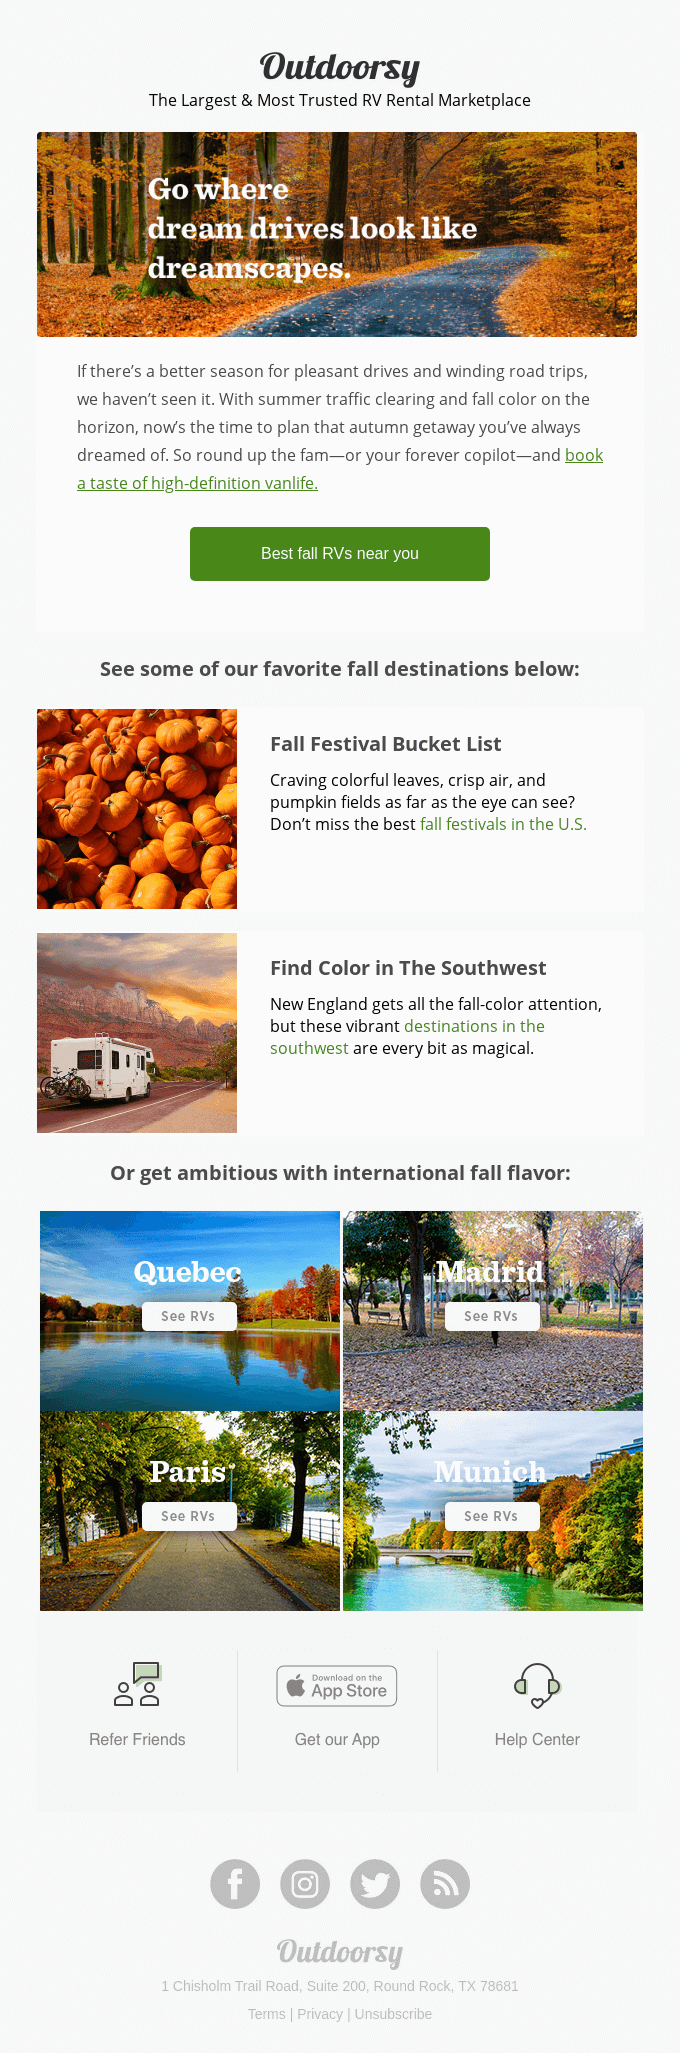 The most colorful fall road trips near you